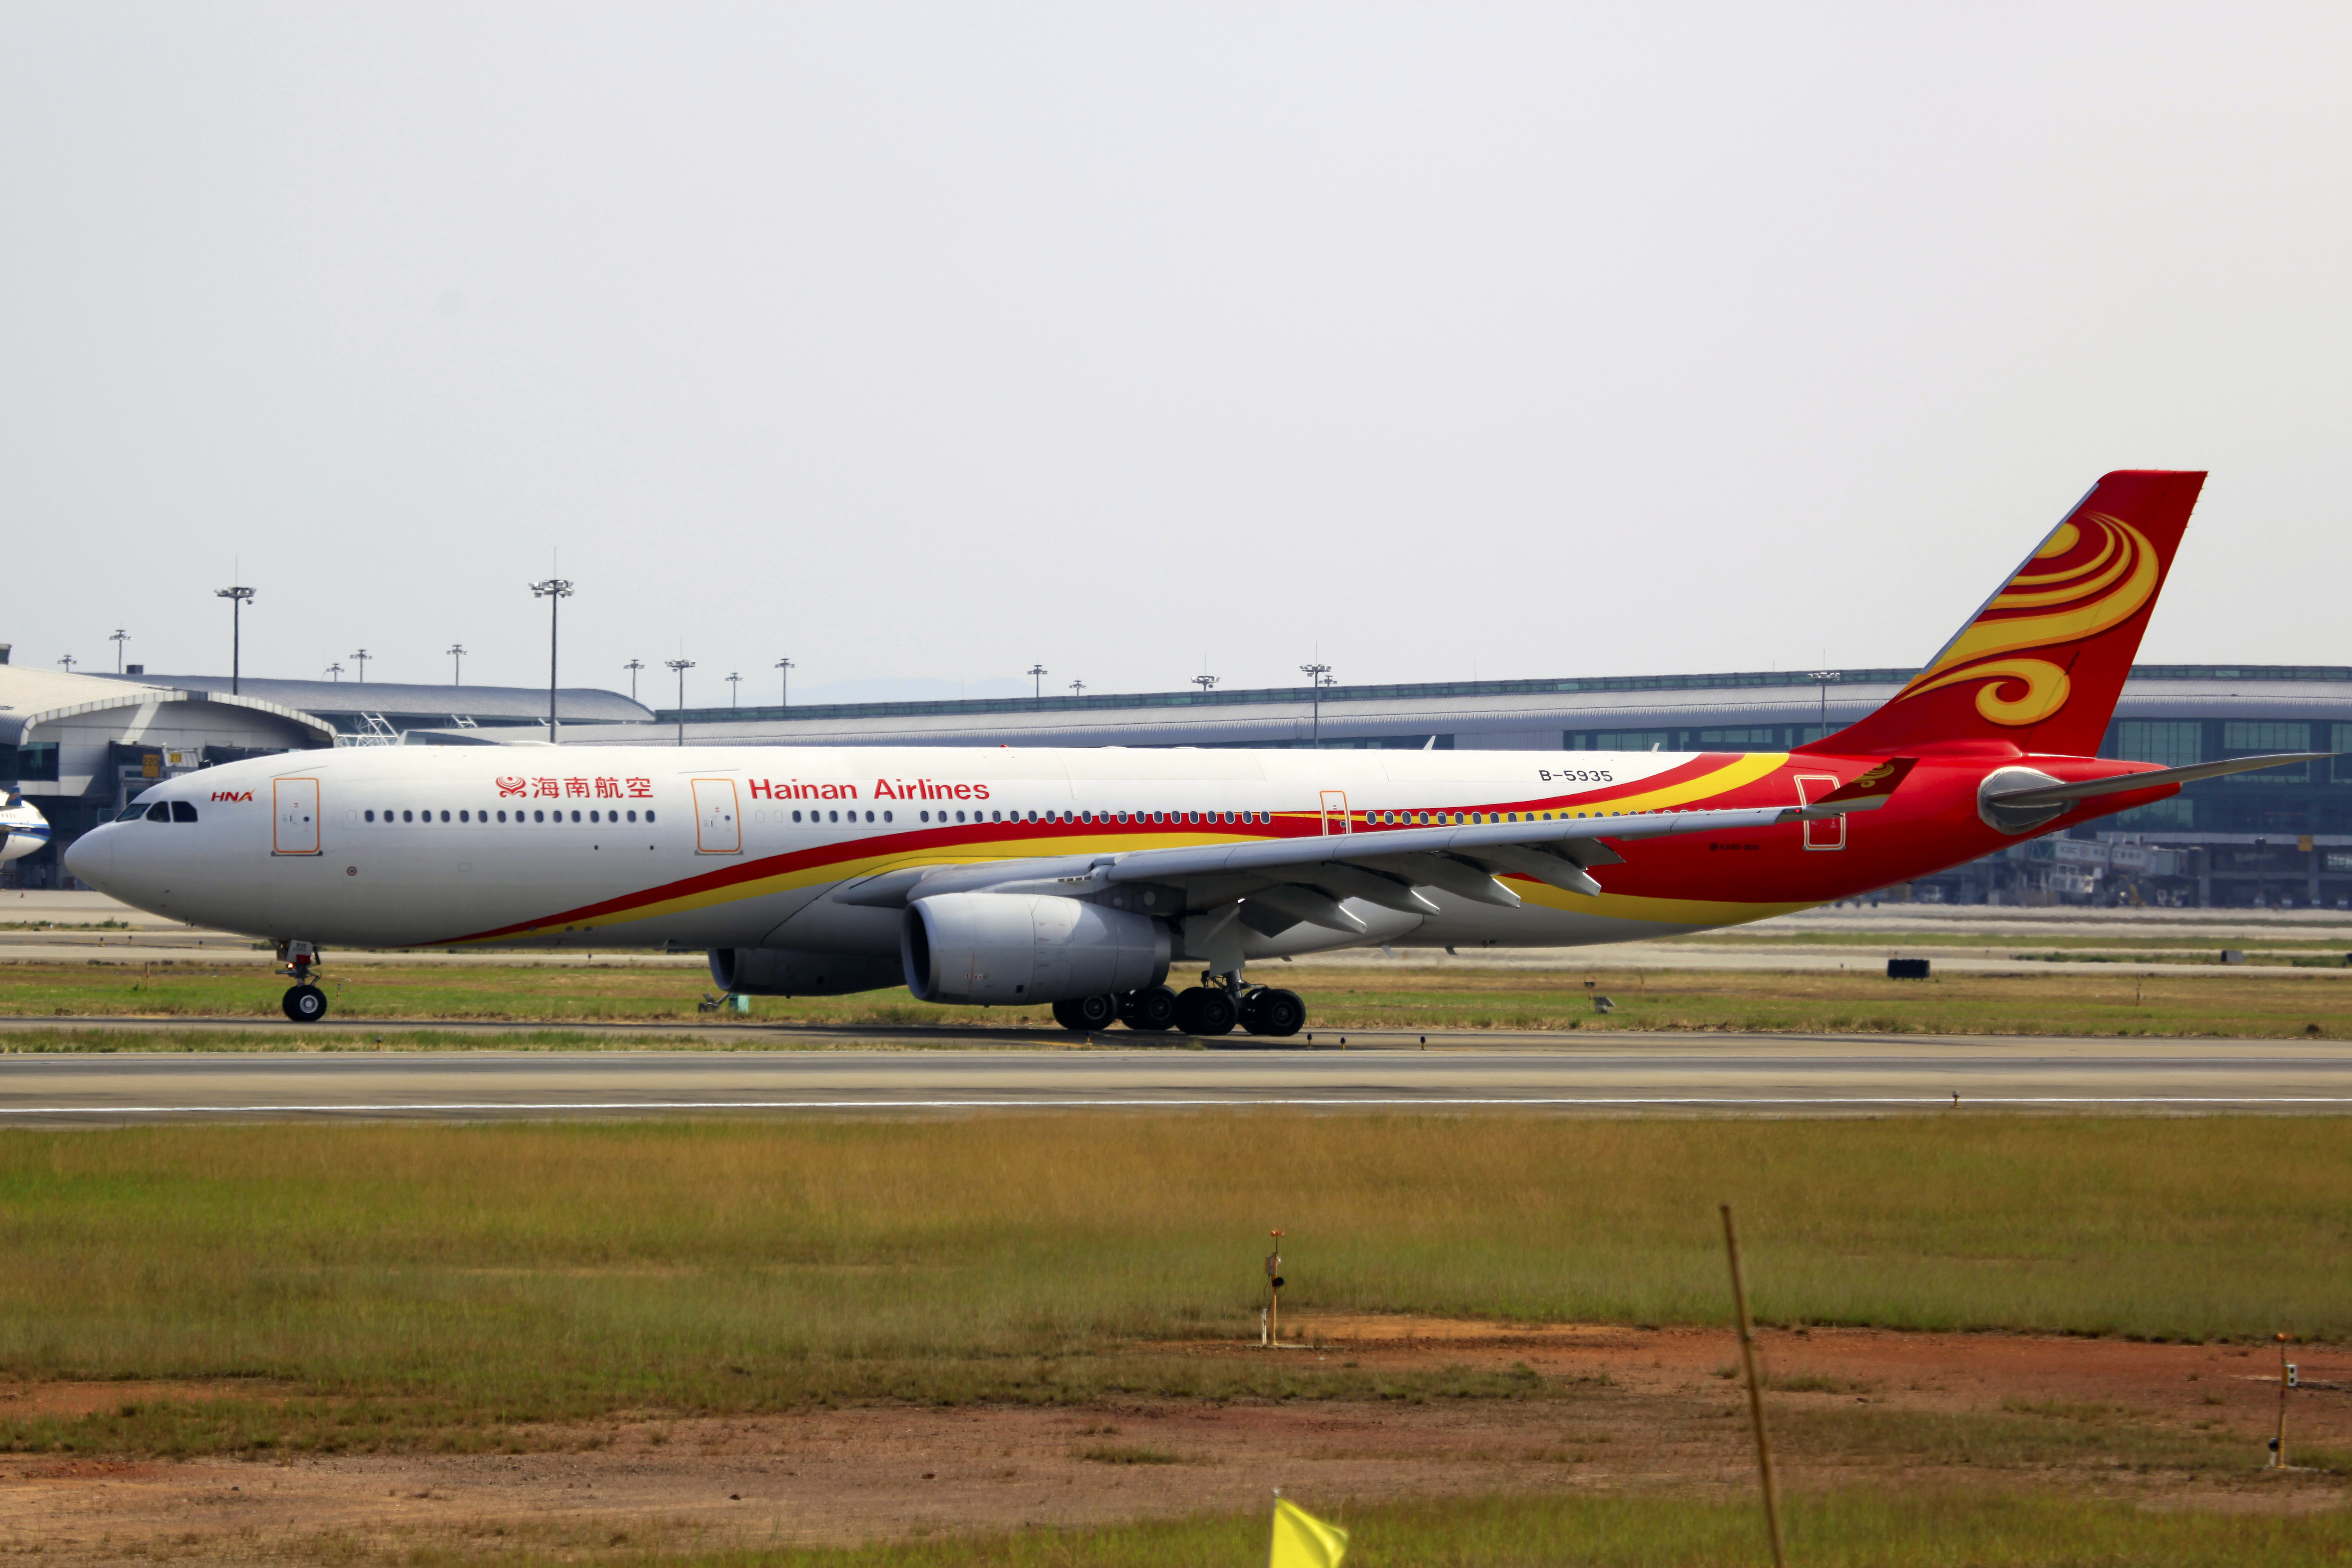 File:B-5935 - Hainan Airlines - Airbus A330-343X - CAN (